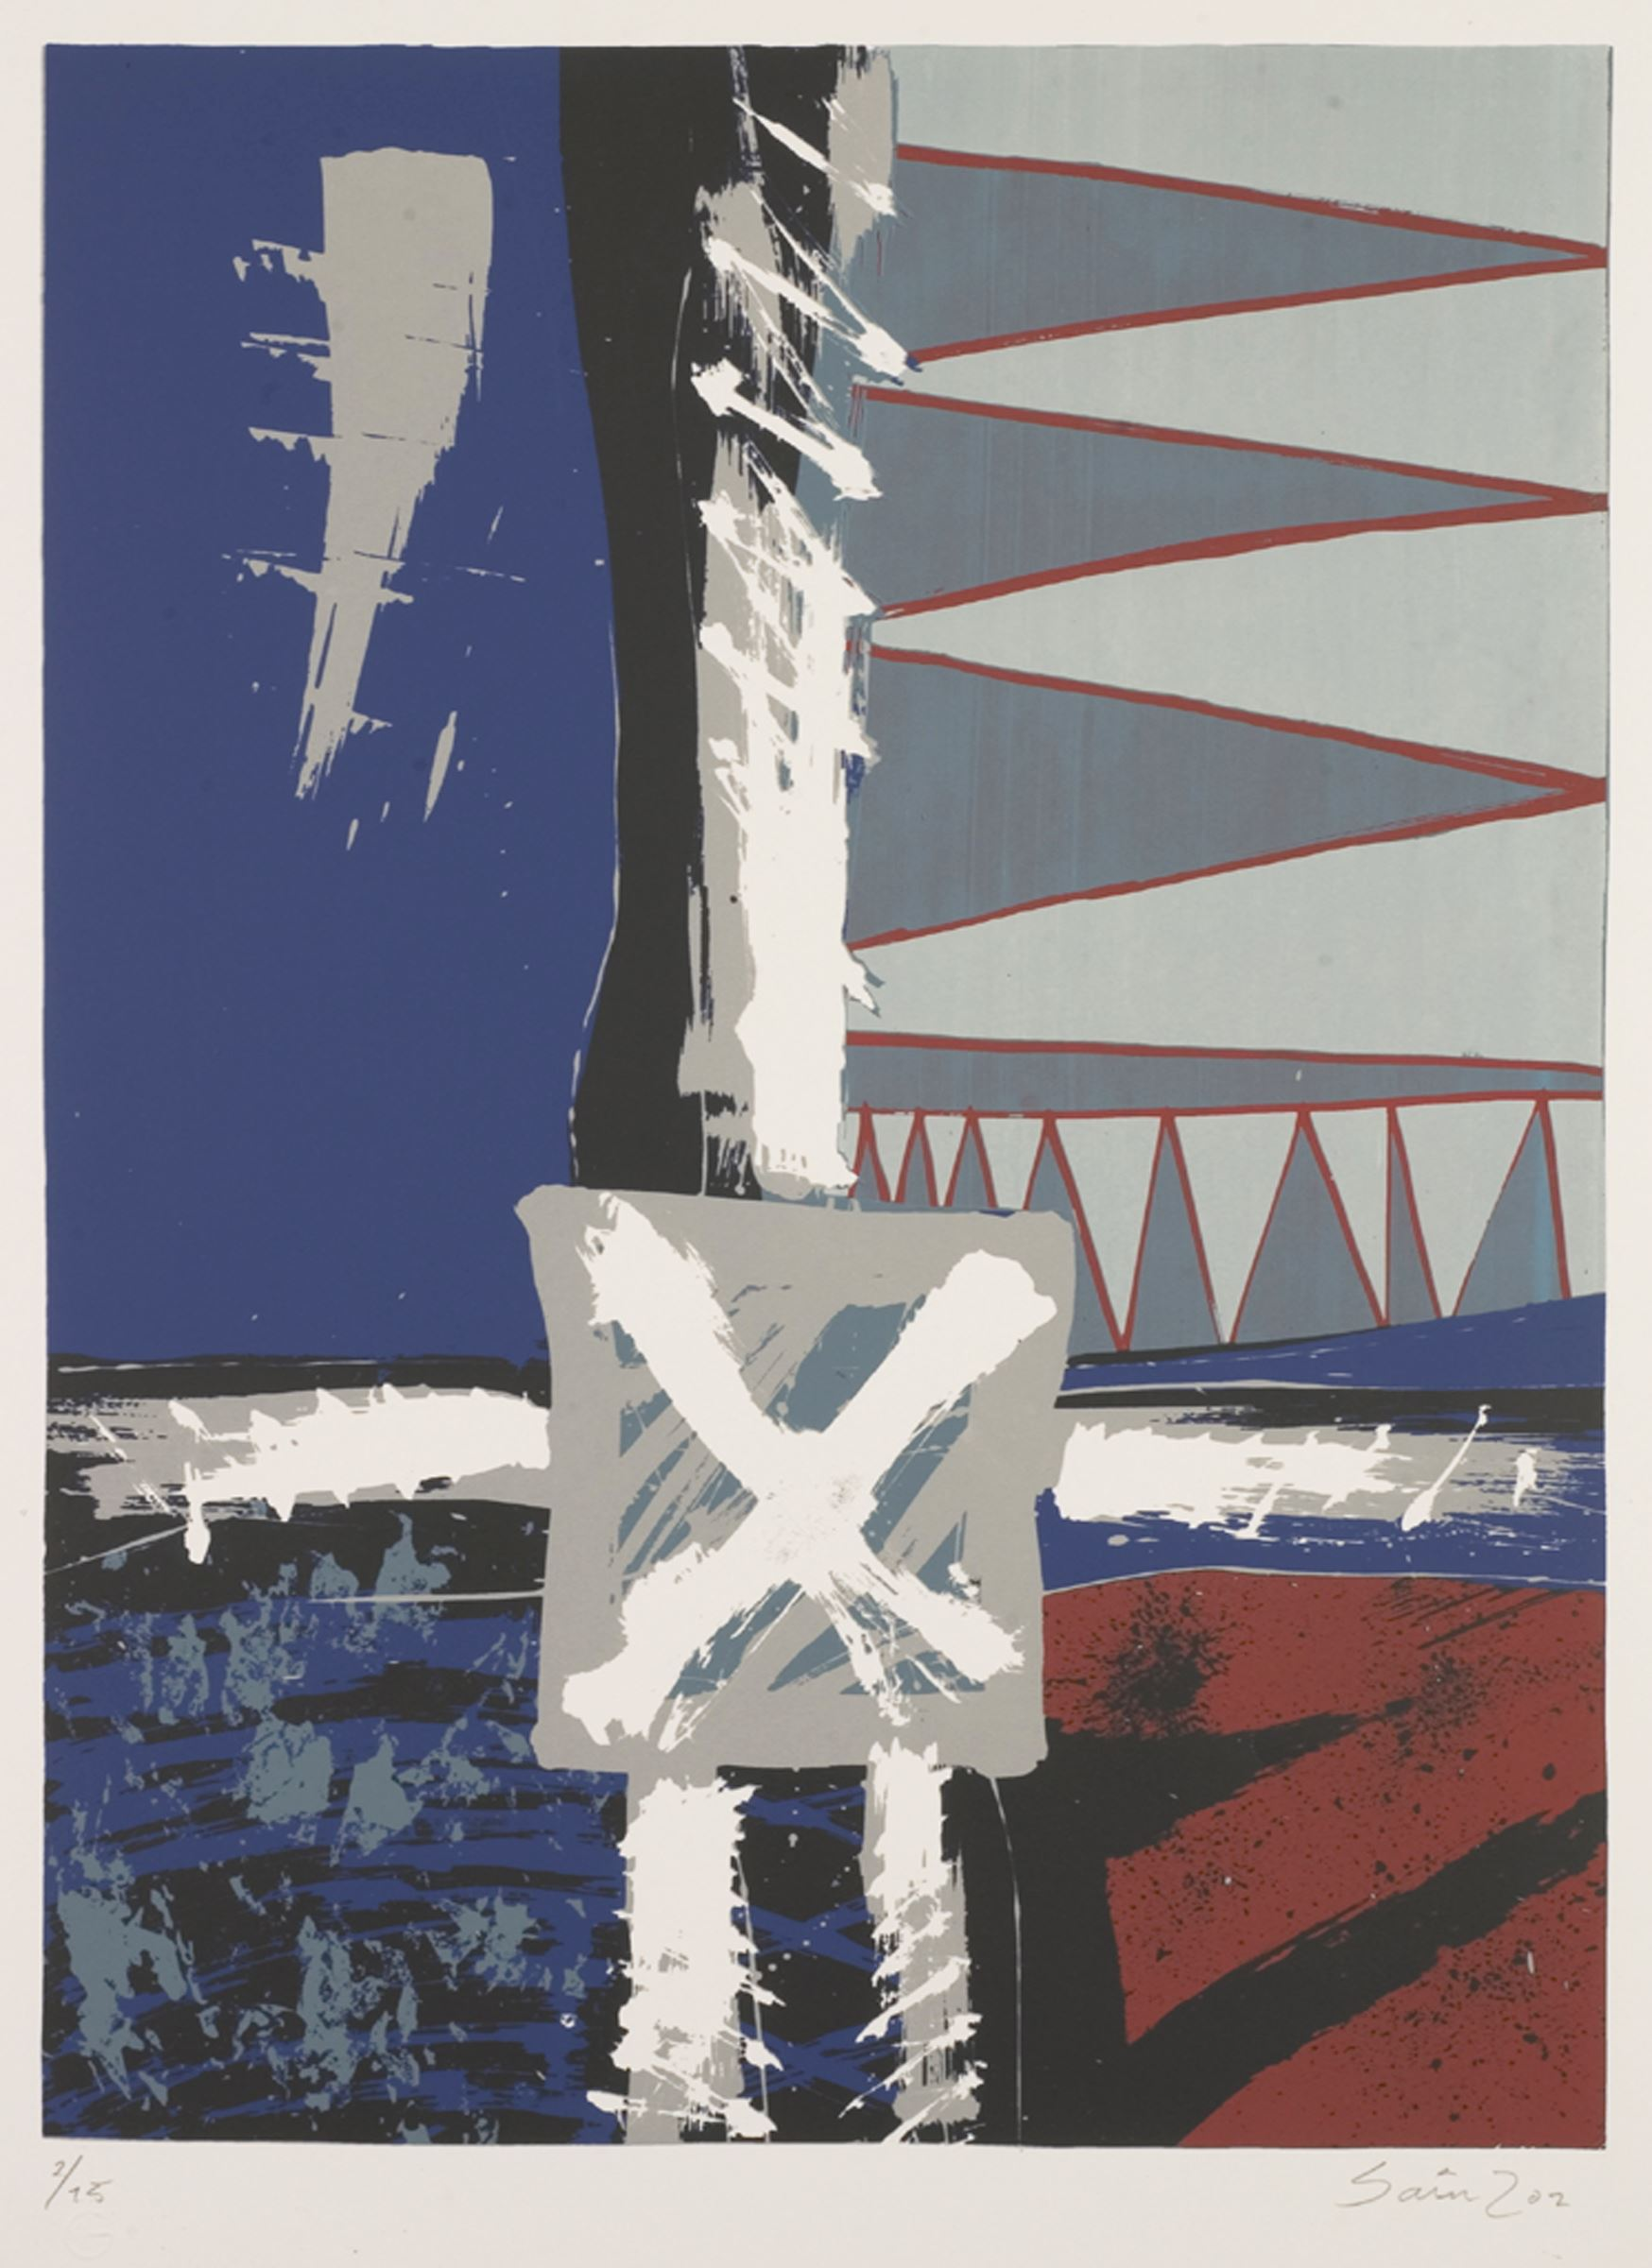 An image of a linocut print with a cross shape in the middle and blue and red blocks of color on the